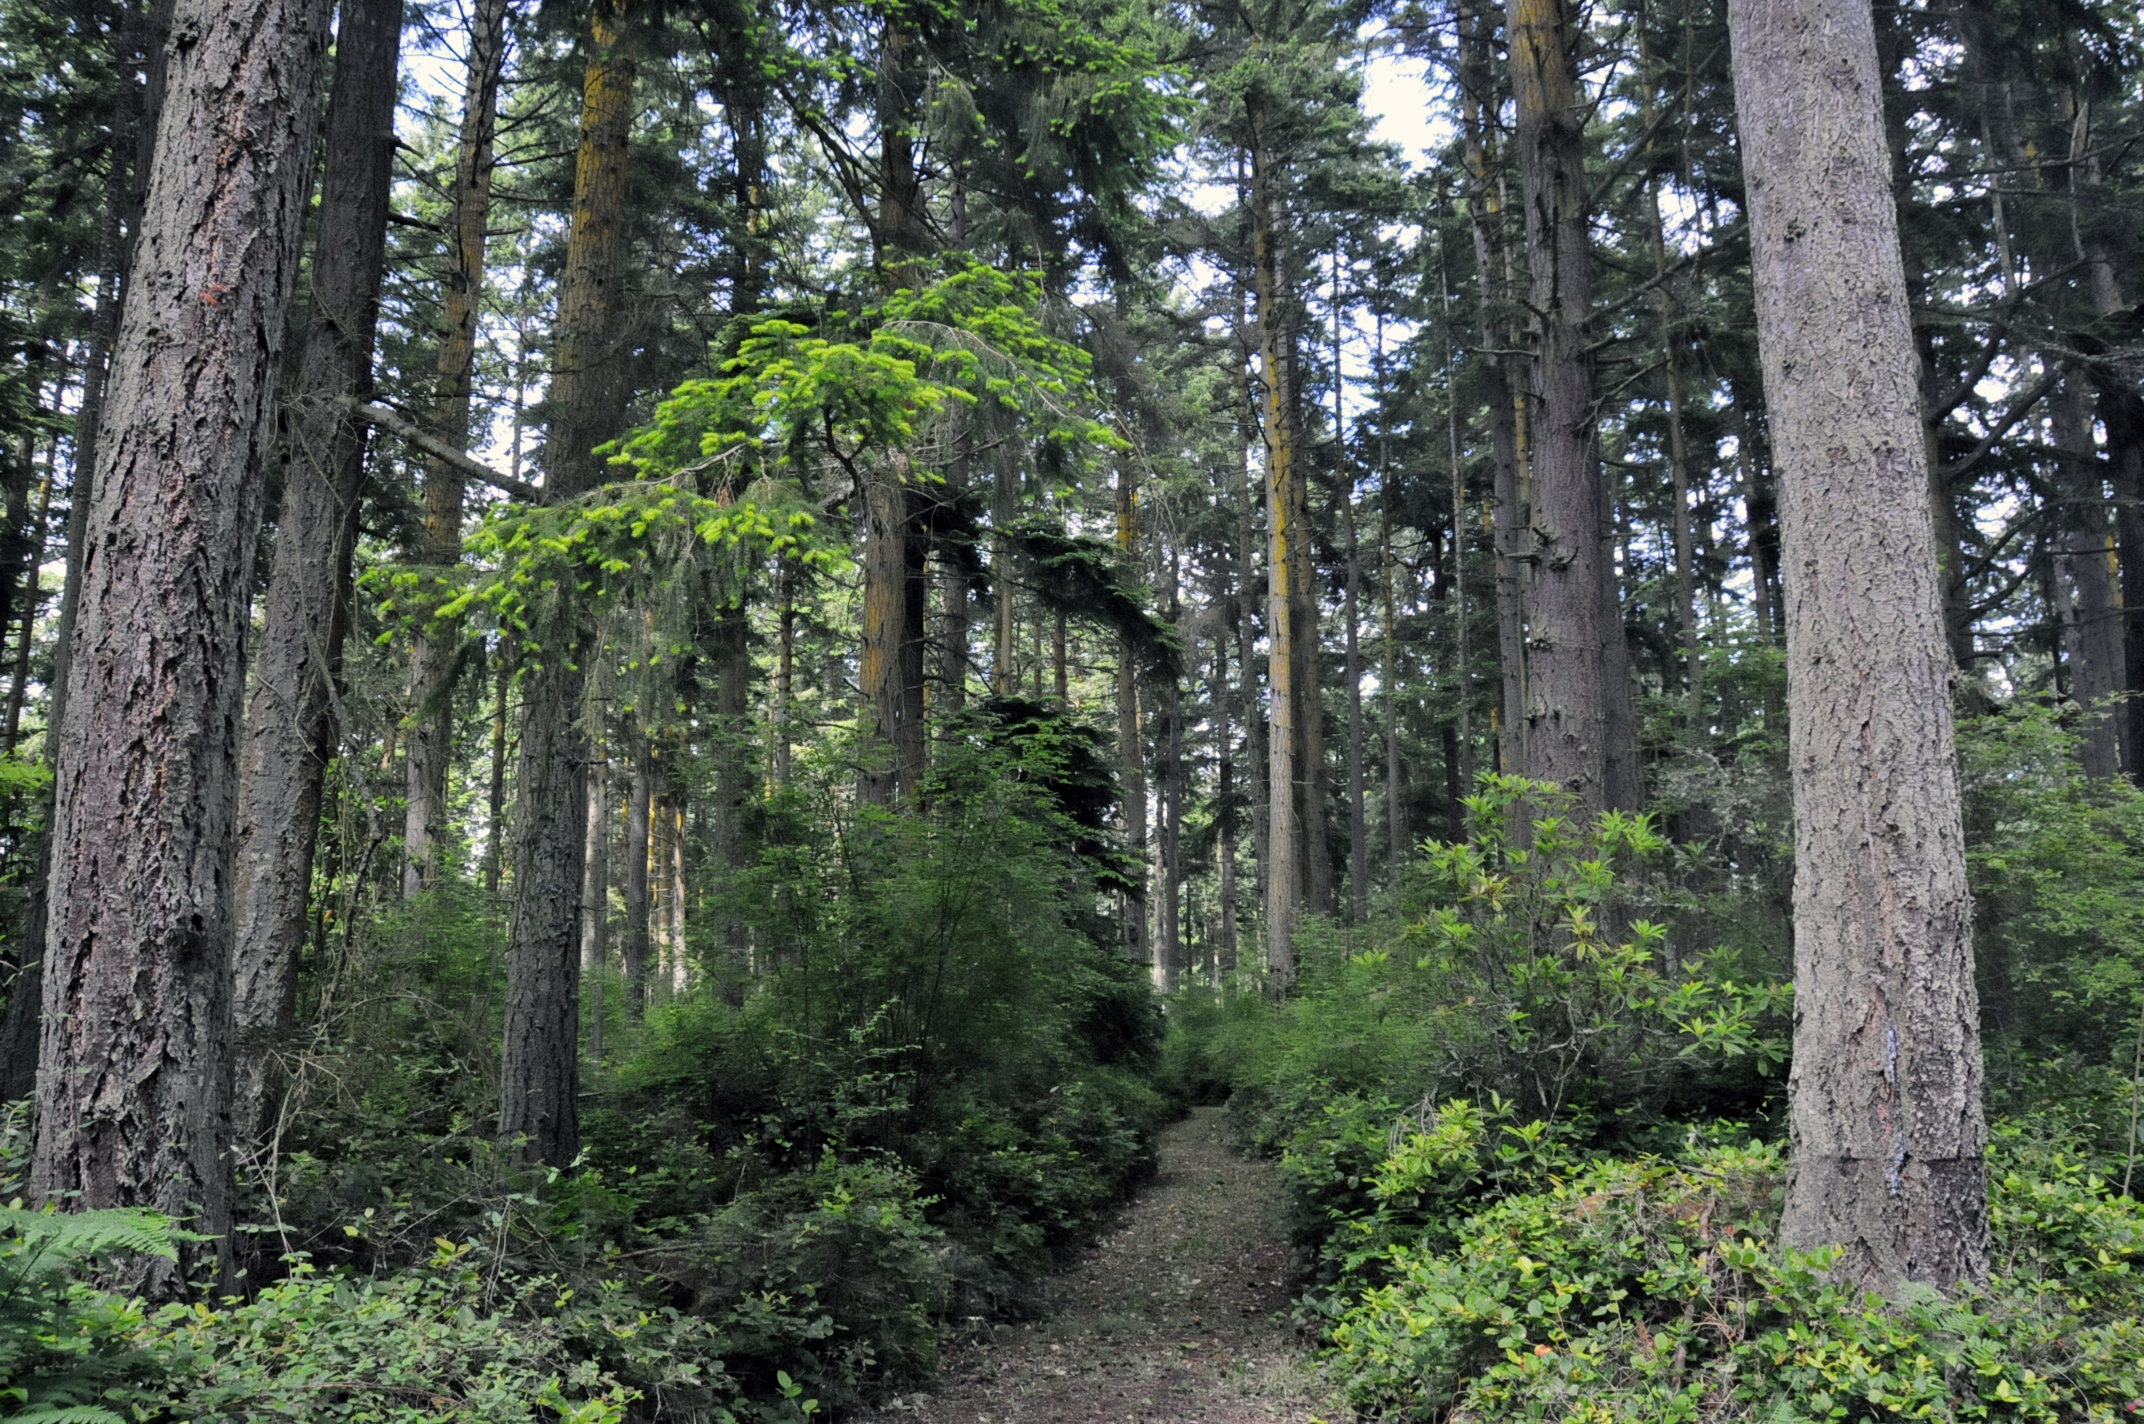 Trail into park at Price Sculpture Forest in Coupeville on Whidbey Island